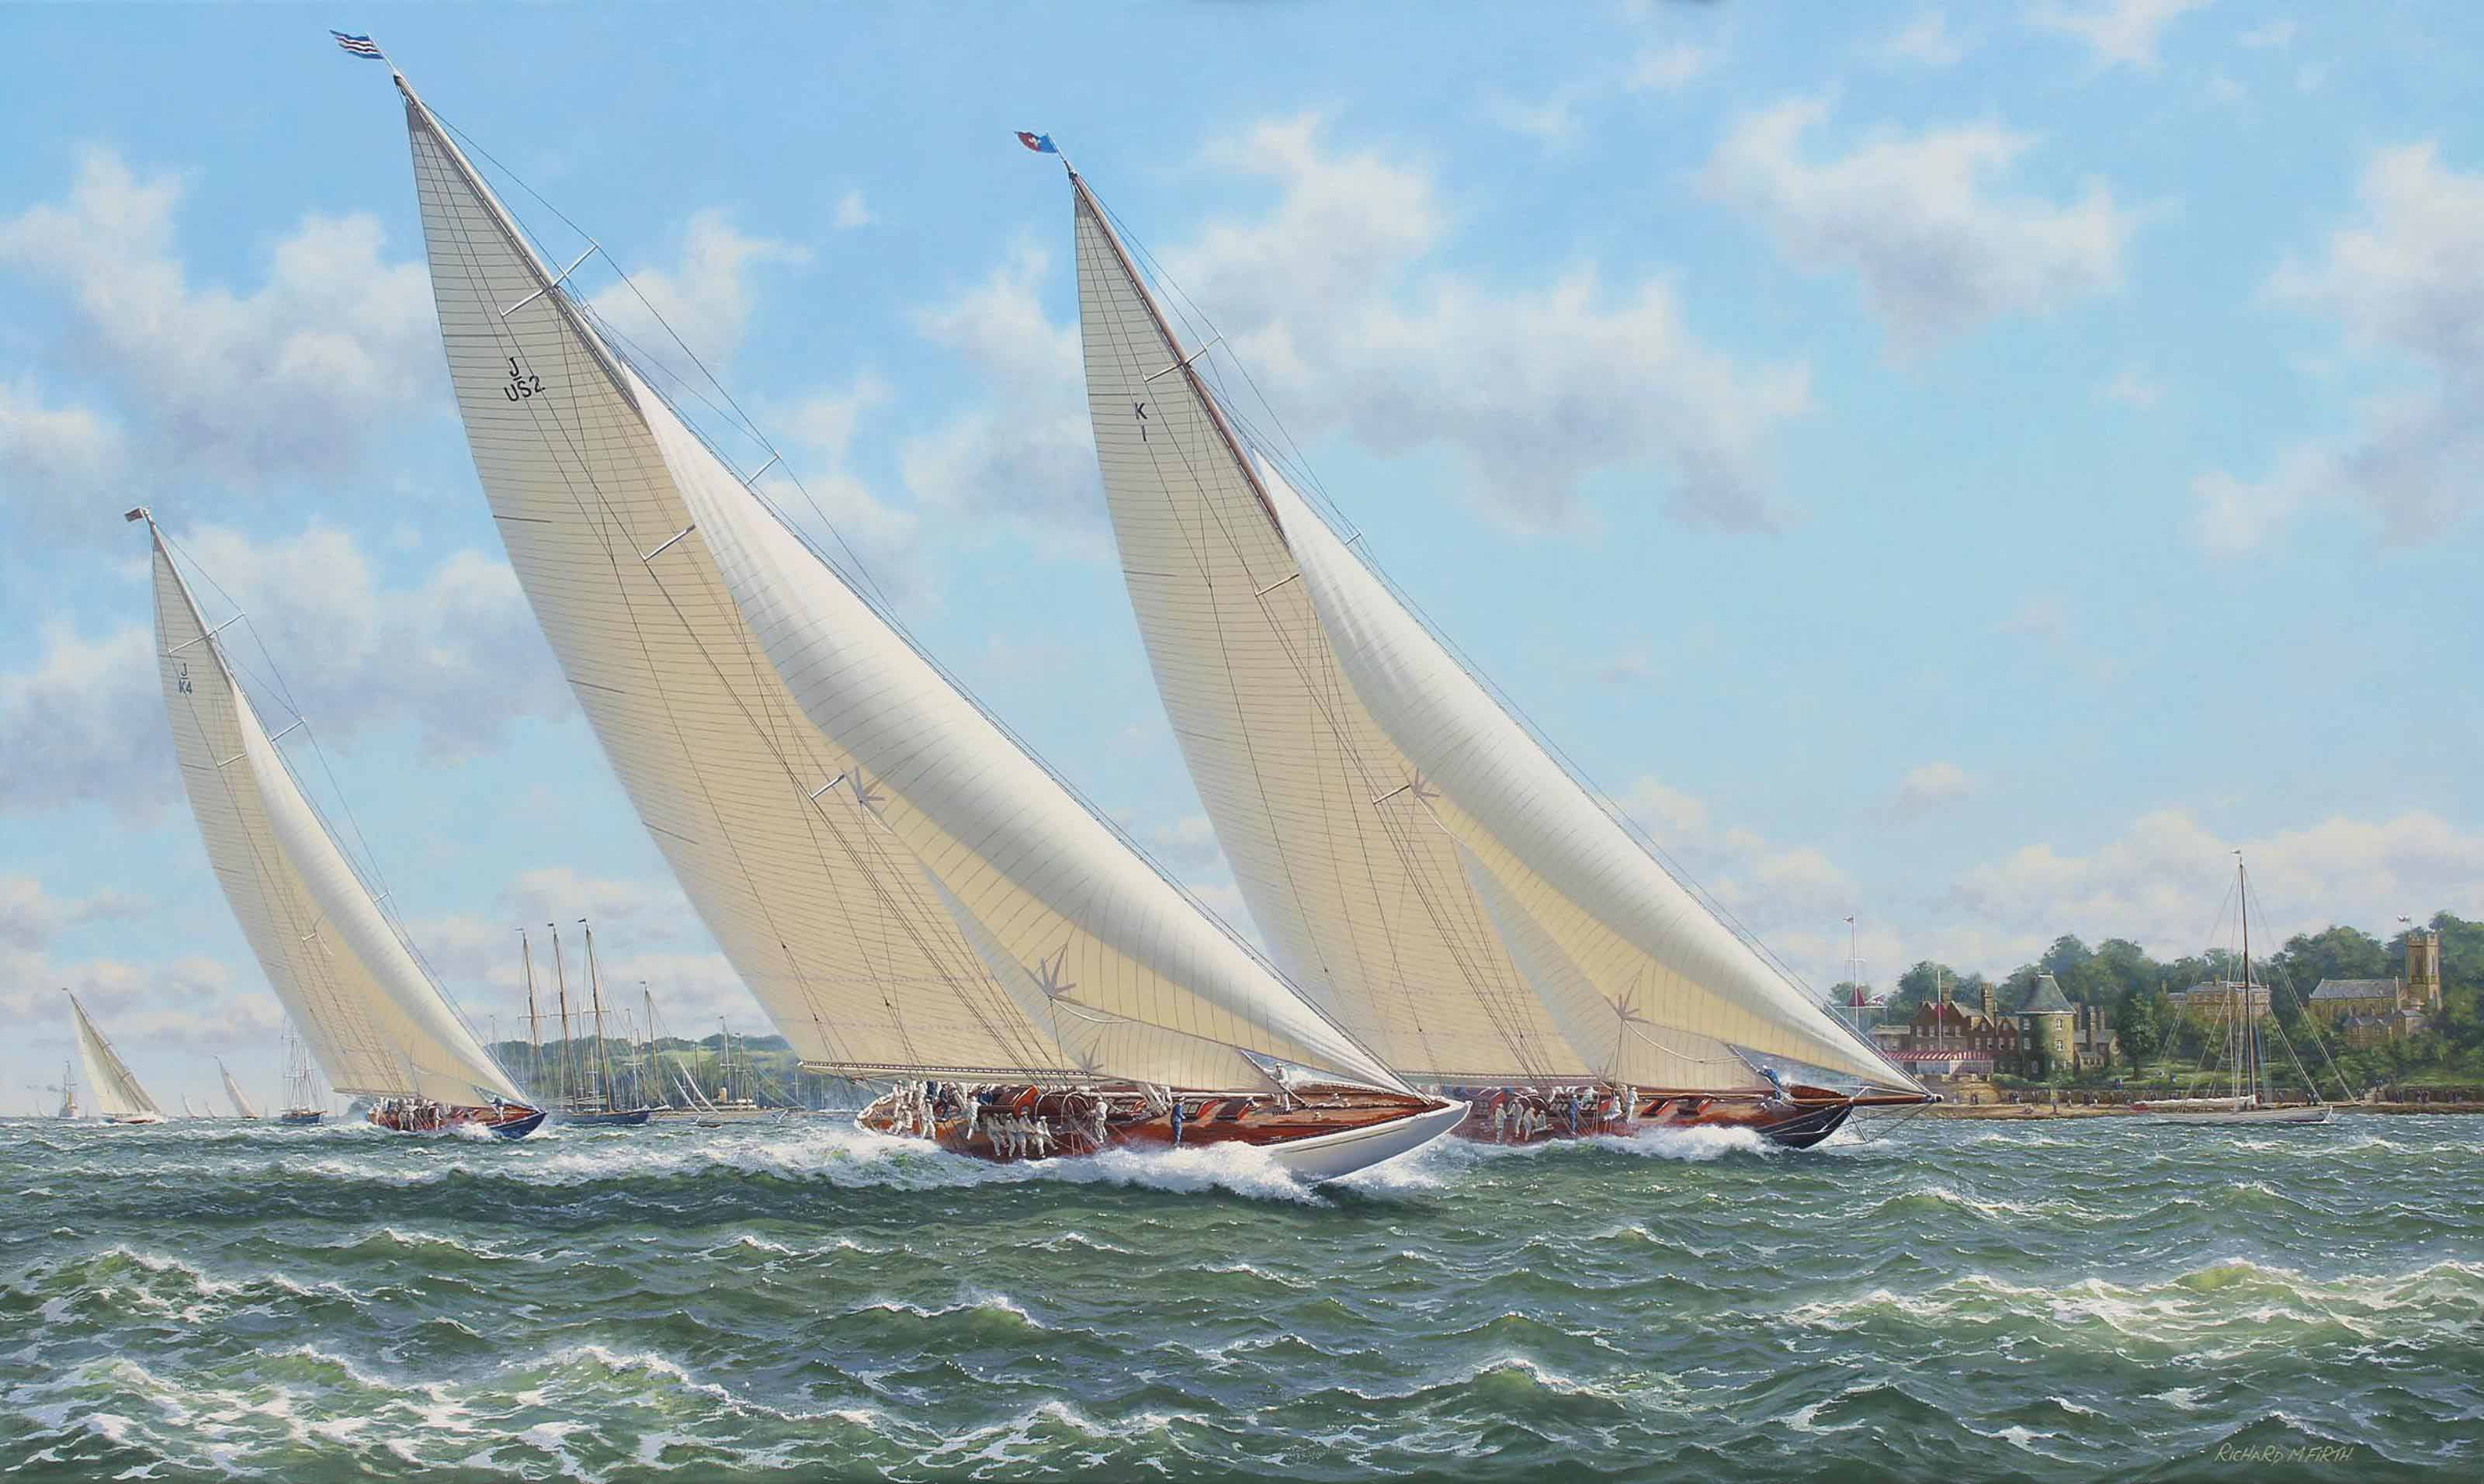 Yankee, Britannia and Endeavour racing in the Solent off the Royal Yacht Squadron, Cowes in the summer of 1935